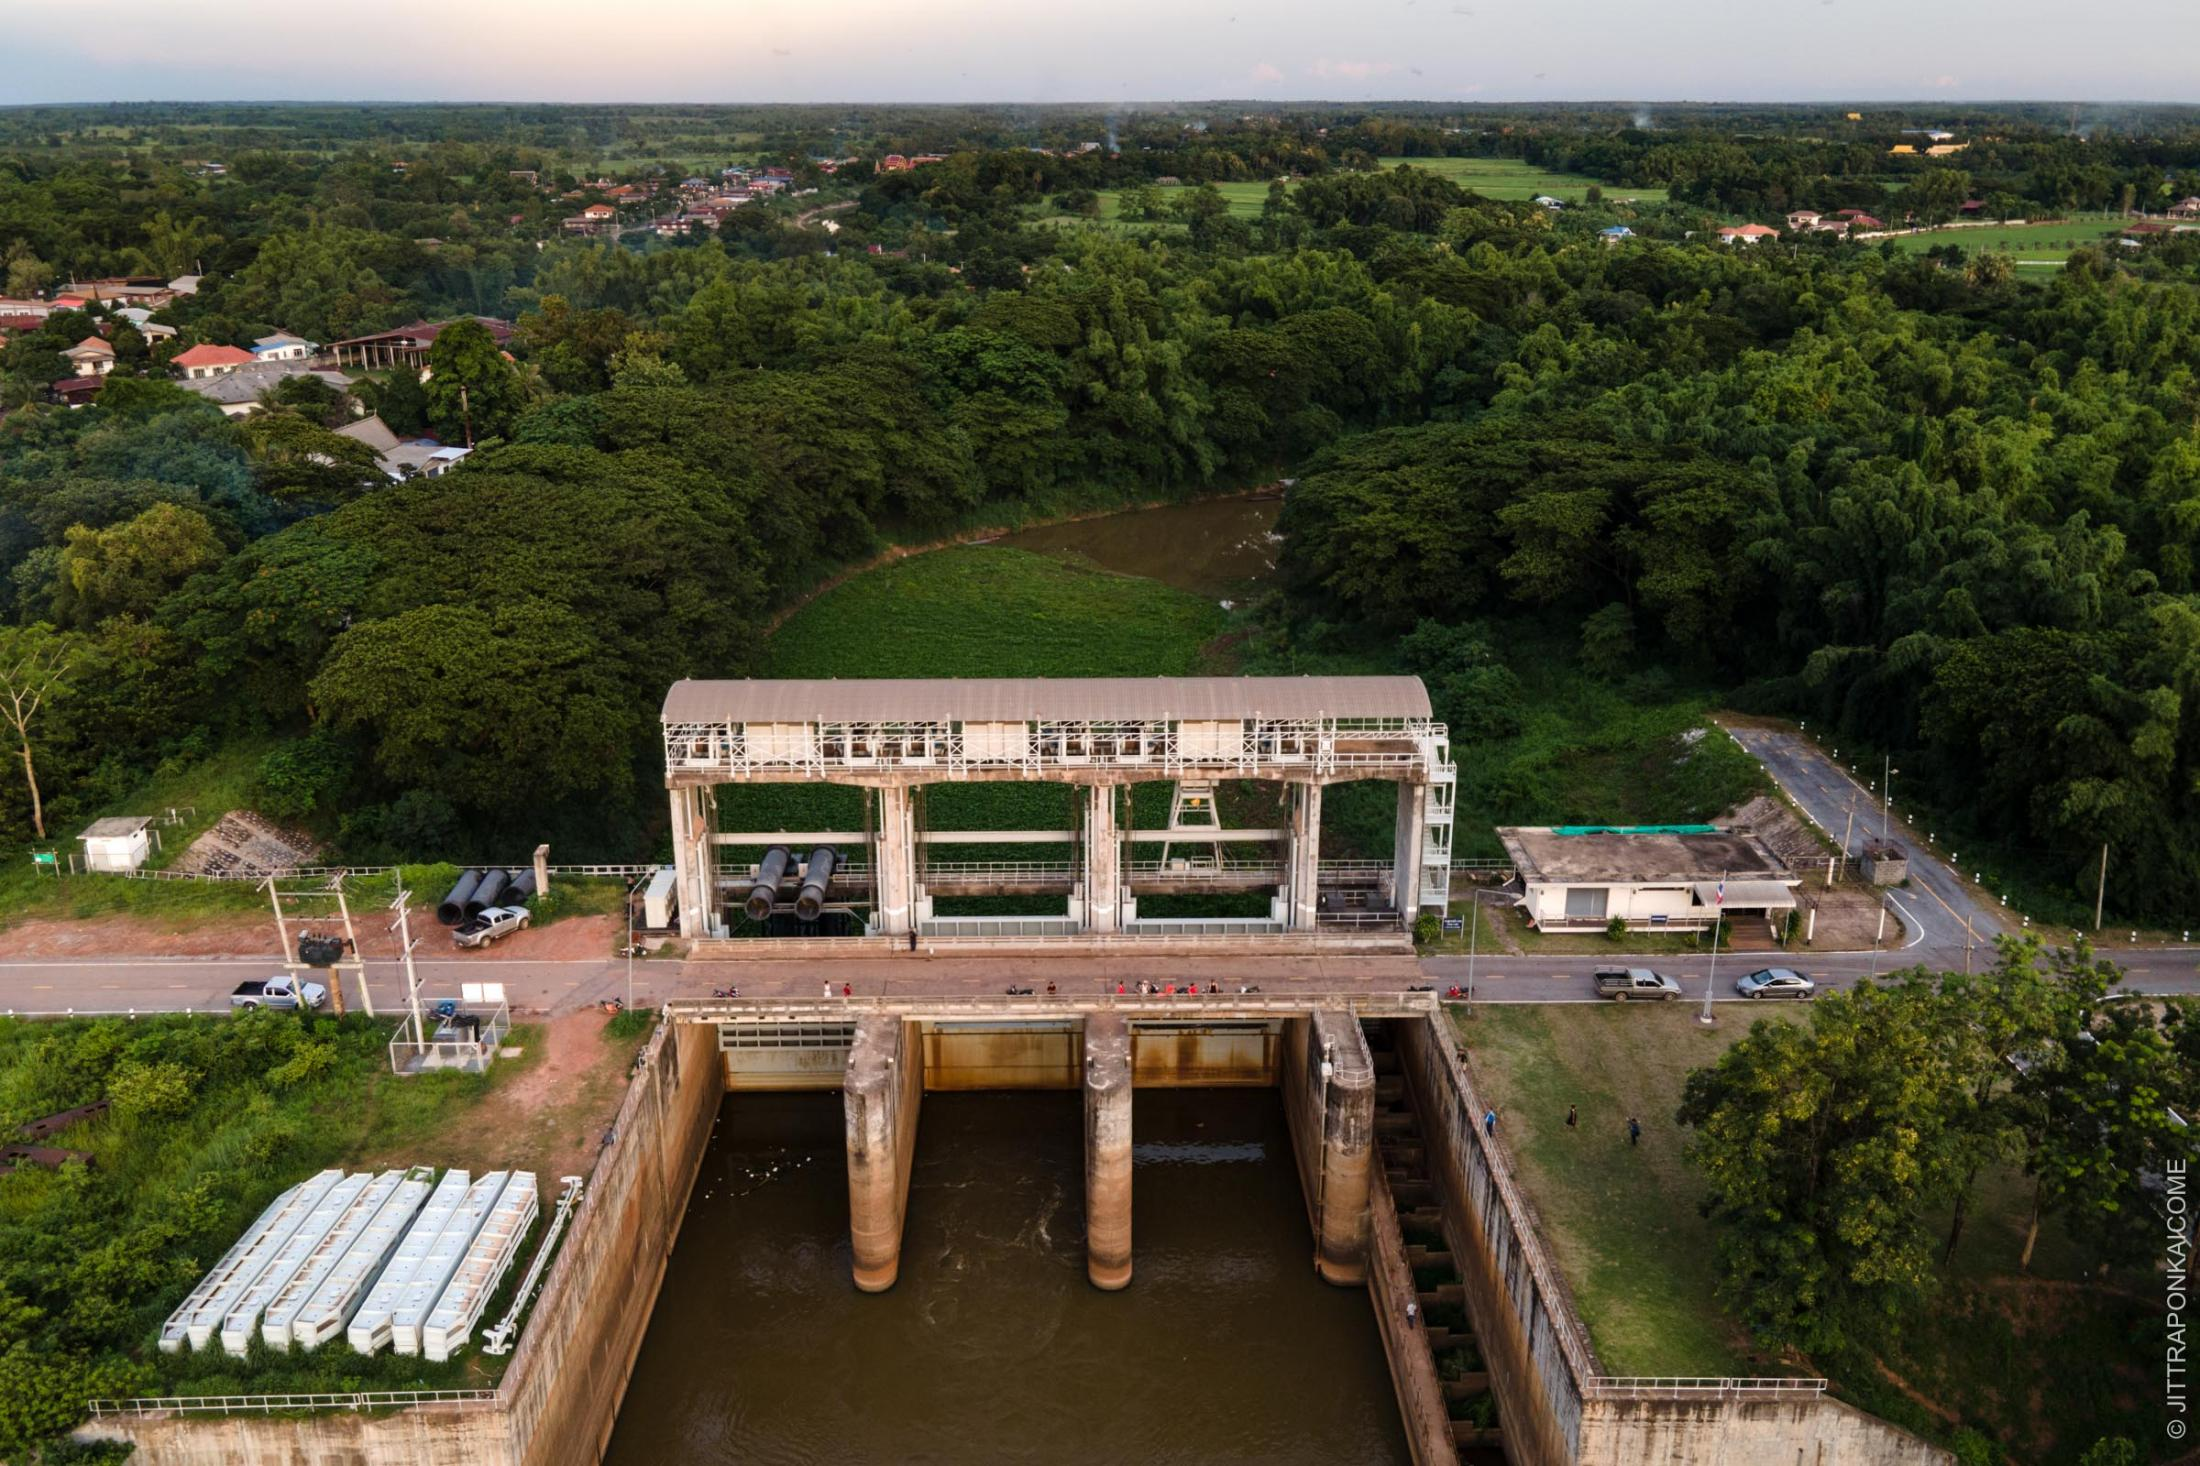 This is the Huai Luang Flood Gate, which diverts water from the Mekong River for usage. If the Sanakham Dam is built, it will reduce the water supply in the lower basin, and tributary rivers. This will result in extremely low water levels in the dry season as well as unexpected water releases from dams upstream, affecting the proper function of the flood gate. In Nong Khai, Thailand – August 2020.